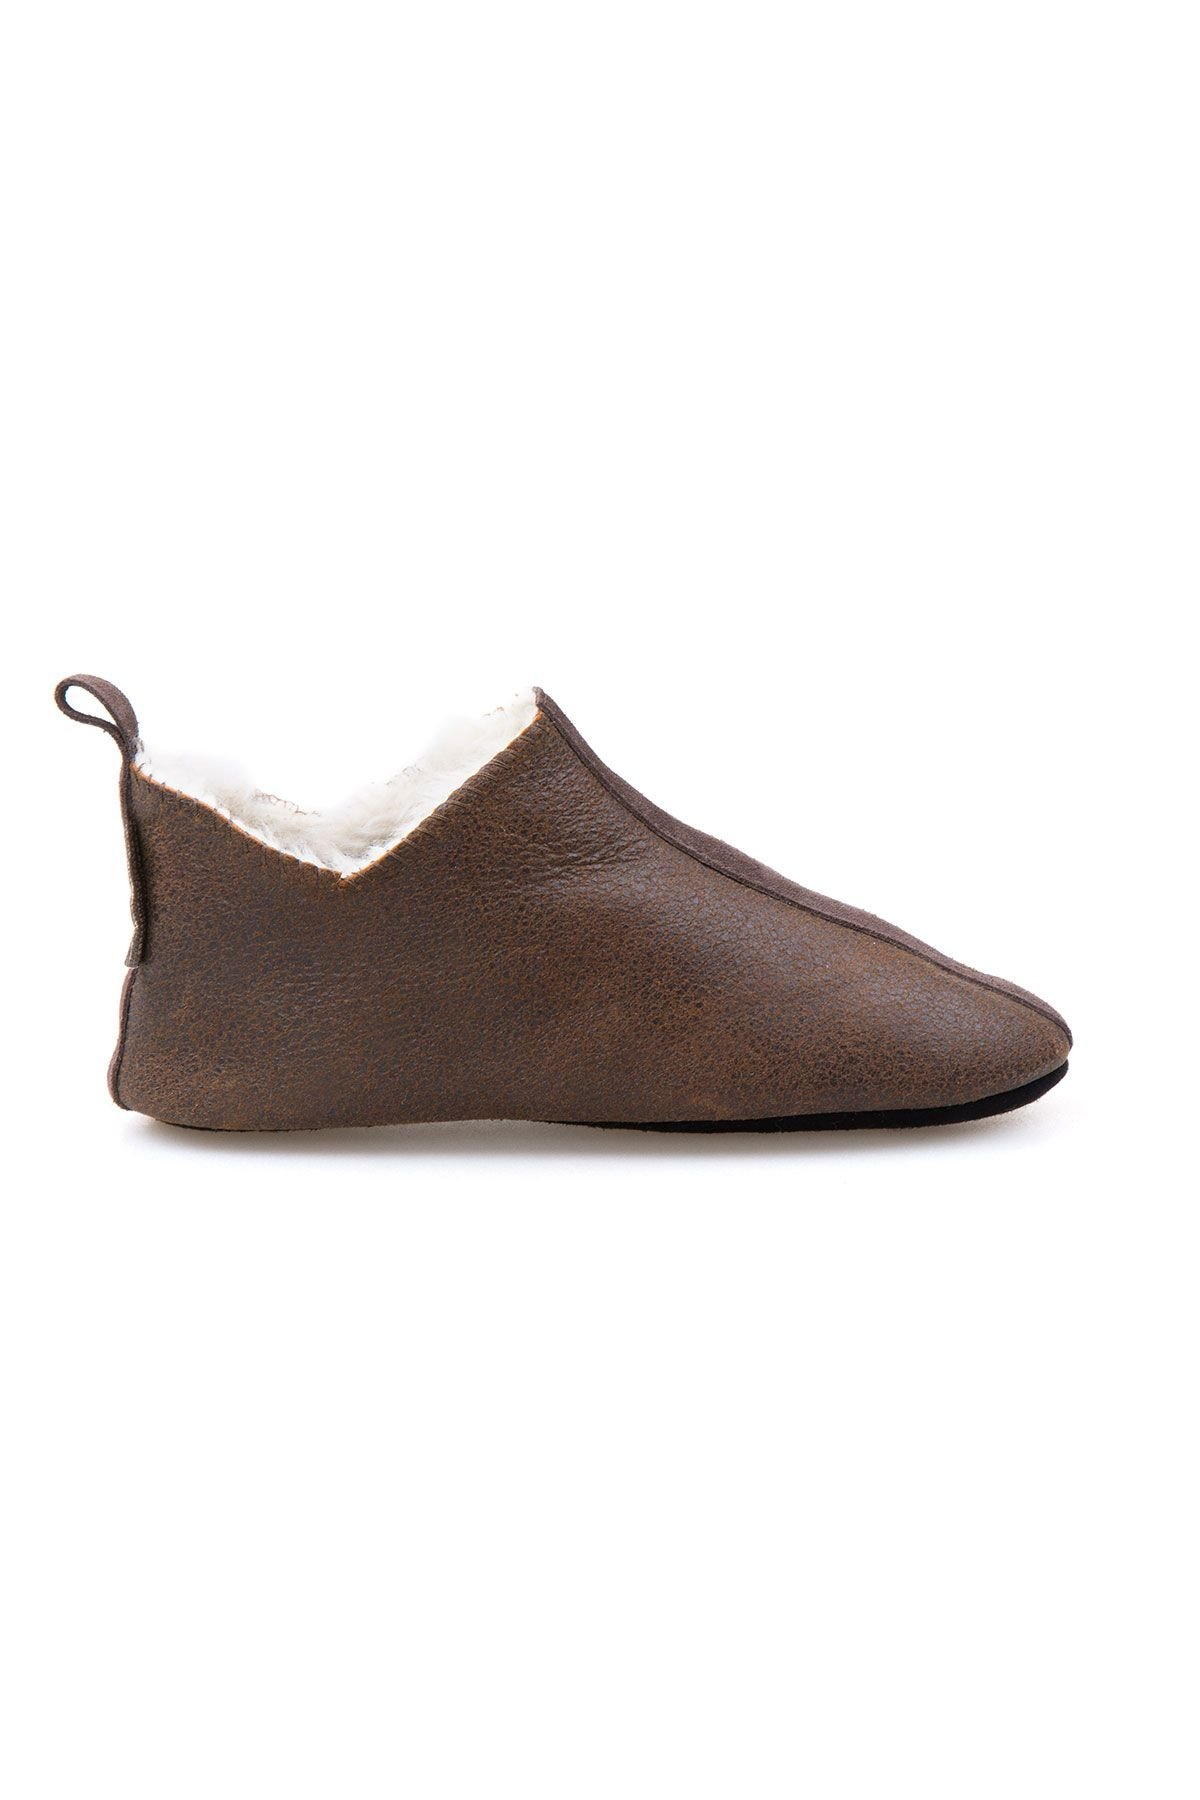 Pegia Shearling Children's Booties 880266 Brown